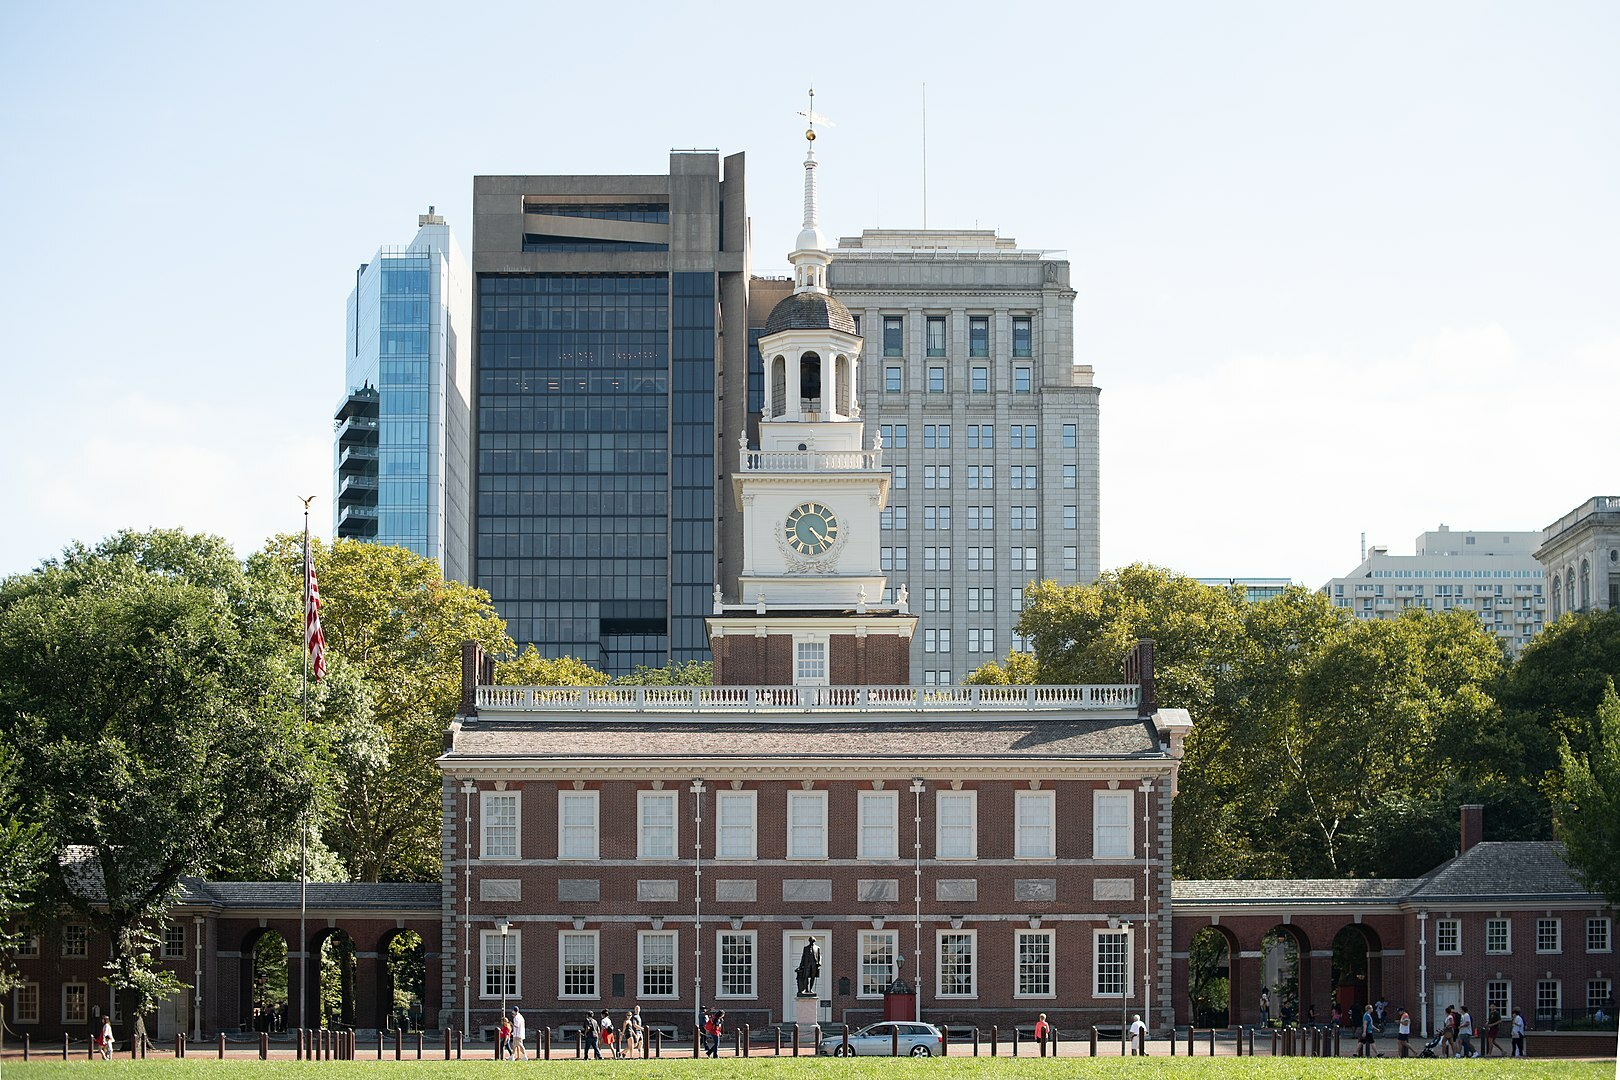 The north side of the Independence Hall